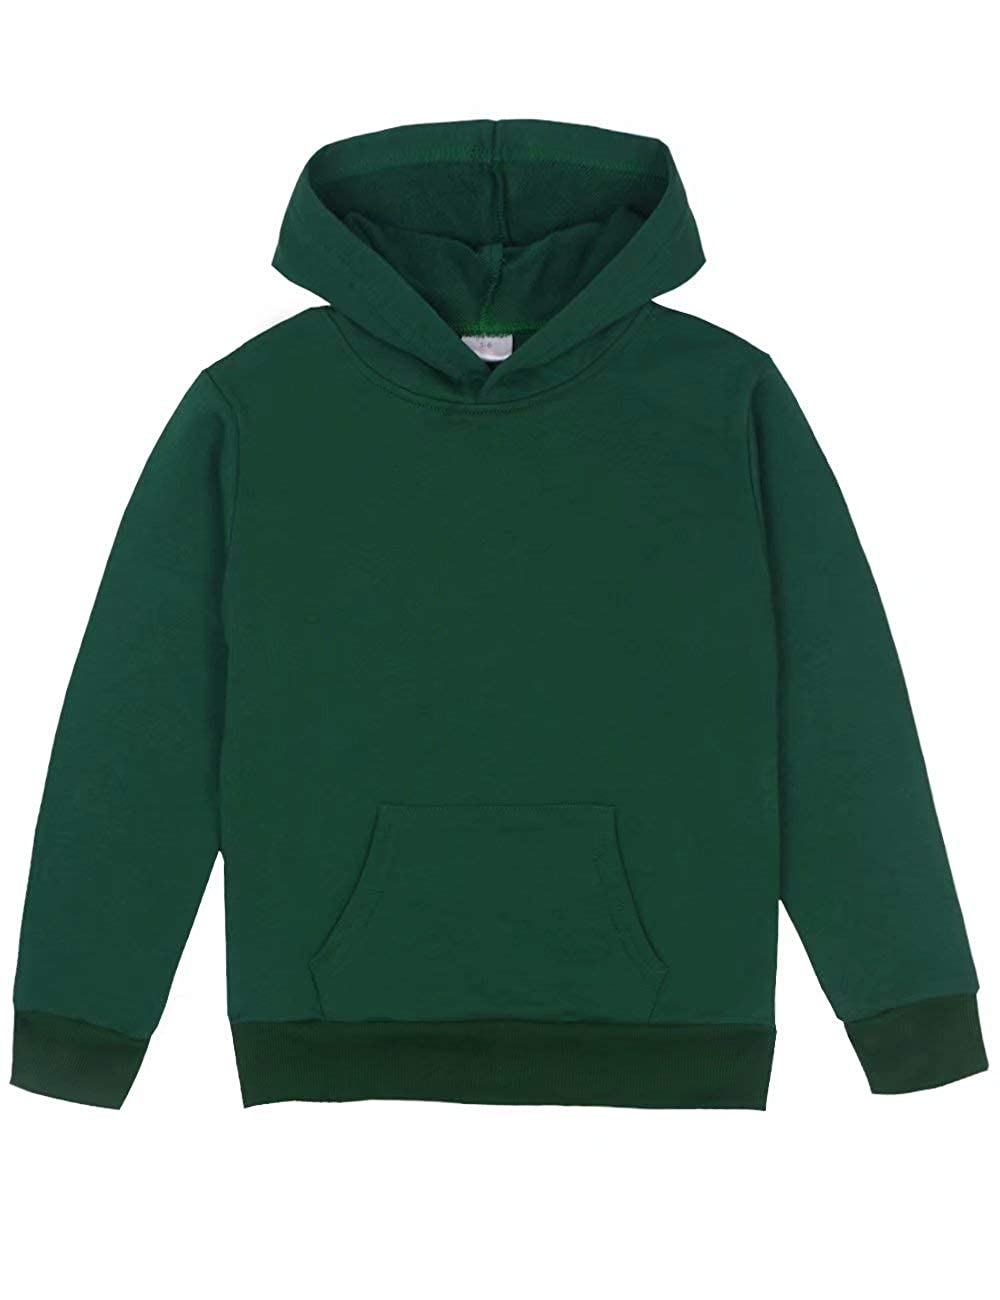 Spring&Gege Youth Solid Classic Hoodies Soft Hooded Sweatshirts for Children (3-12 Years)